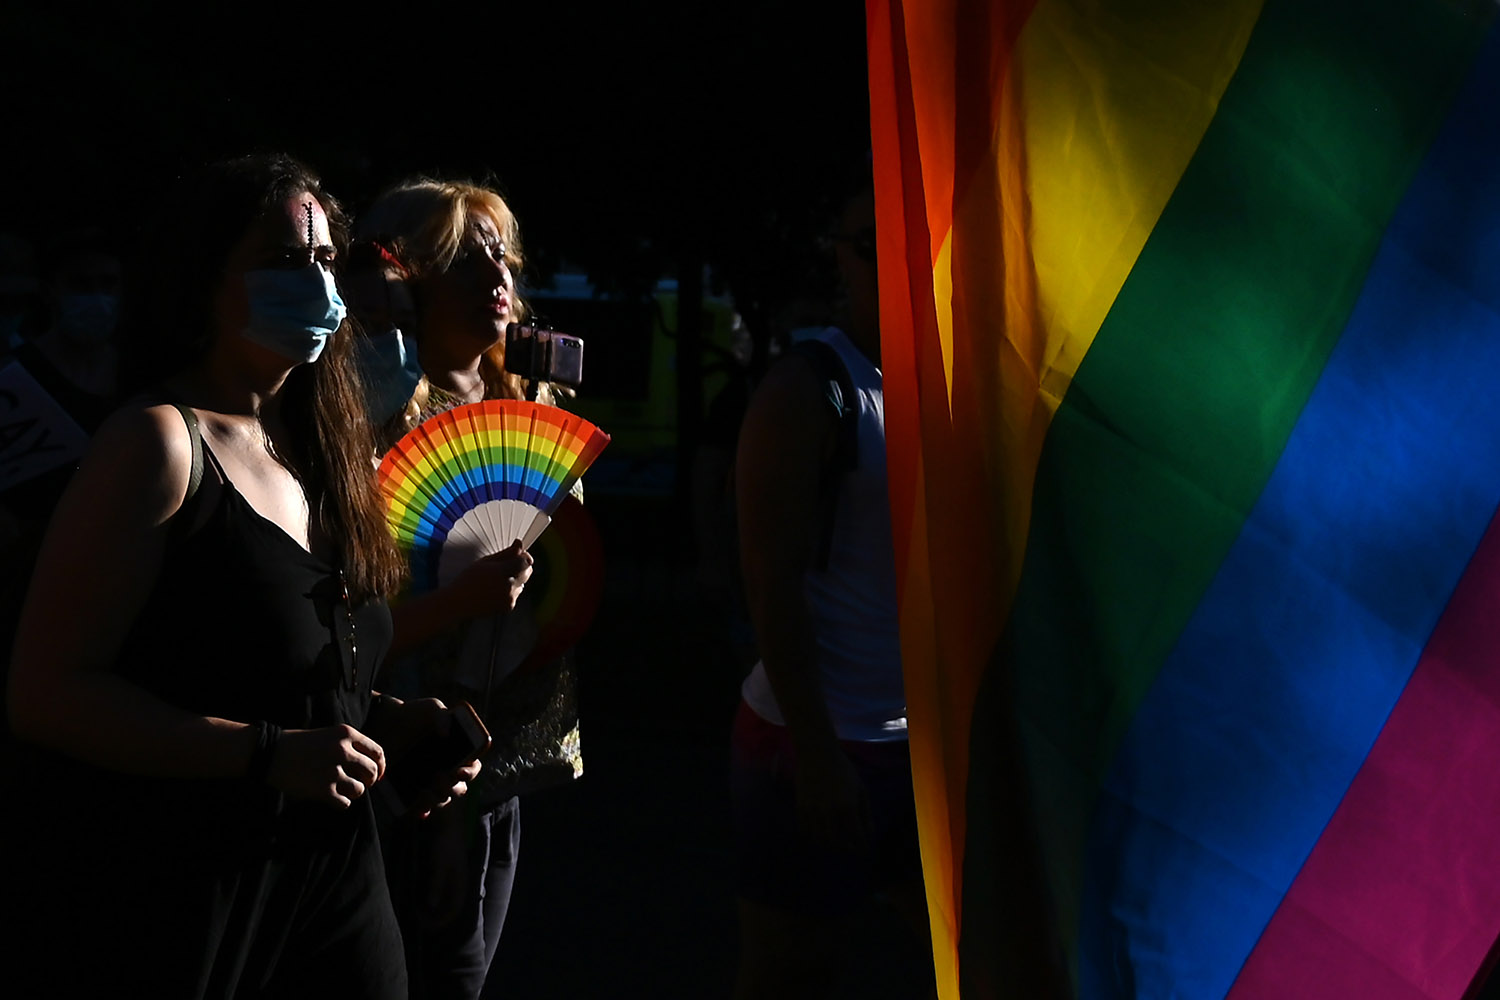 Demonstrators march with a rainbow flag during the 2020 Critical Pride parade in Madrid on June 28. GABRIEL BOUYS/AFP via Getty Images